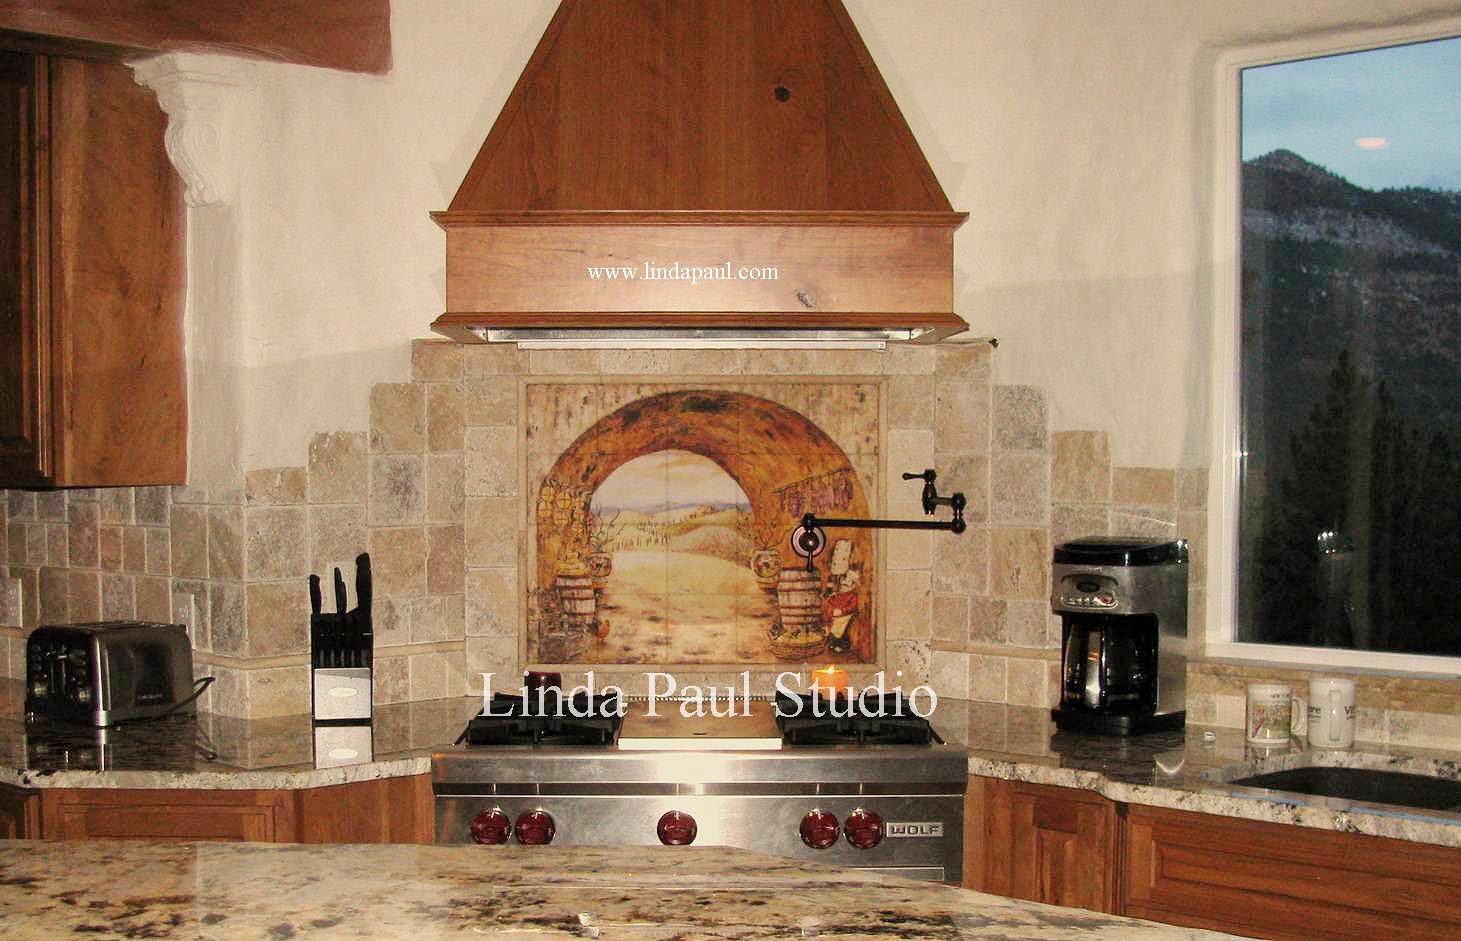 kitchen backsplash ideas gallery tile backsplash pictures kitchen tile backsplash designs important final